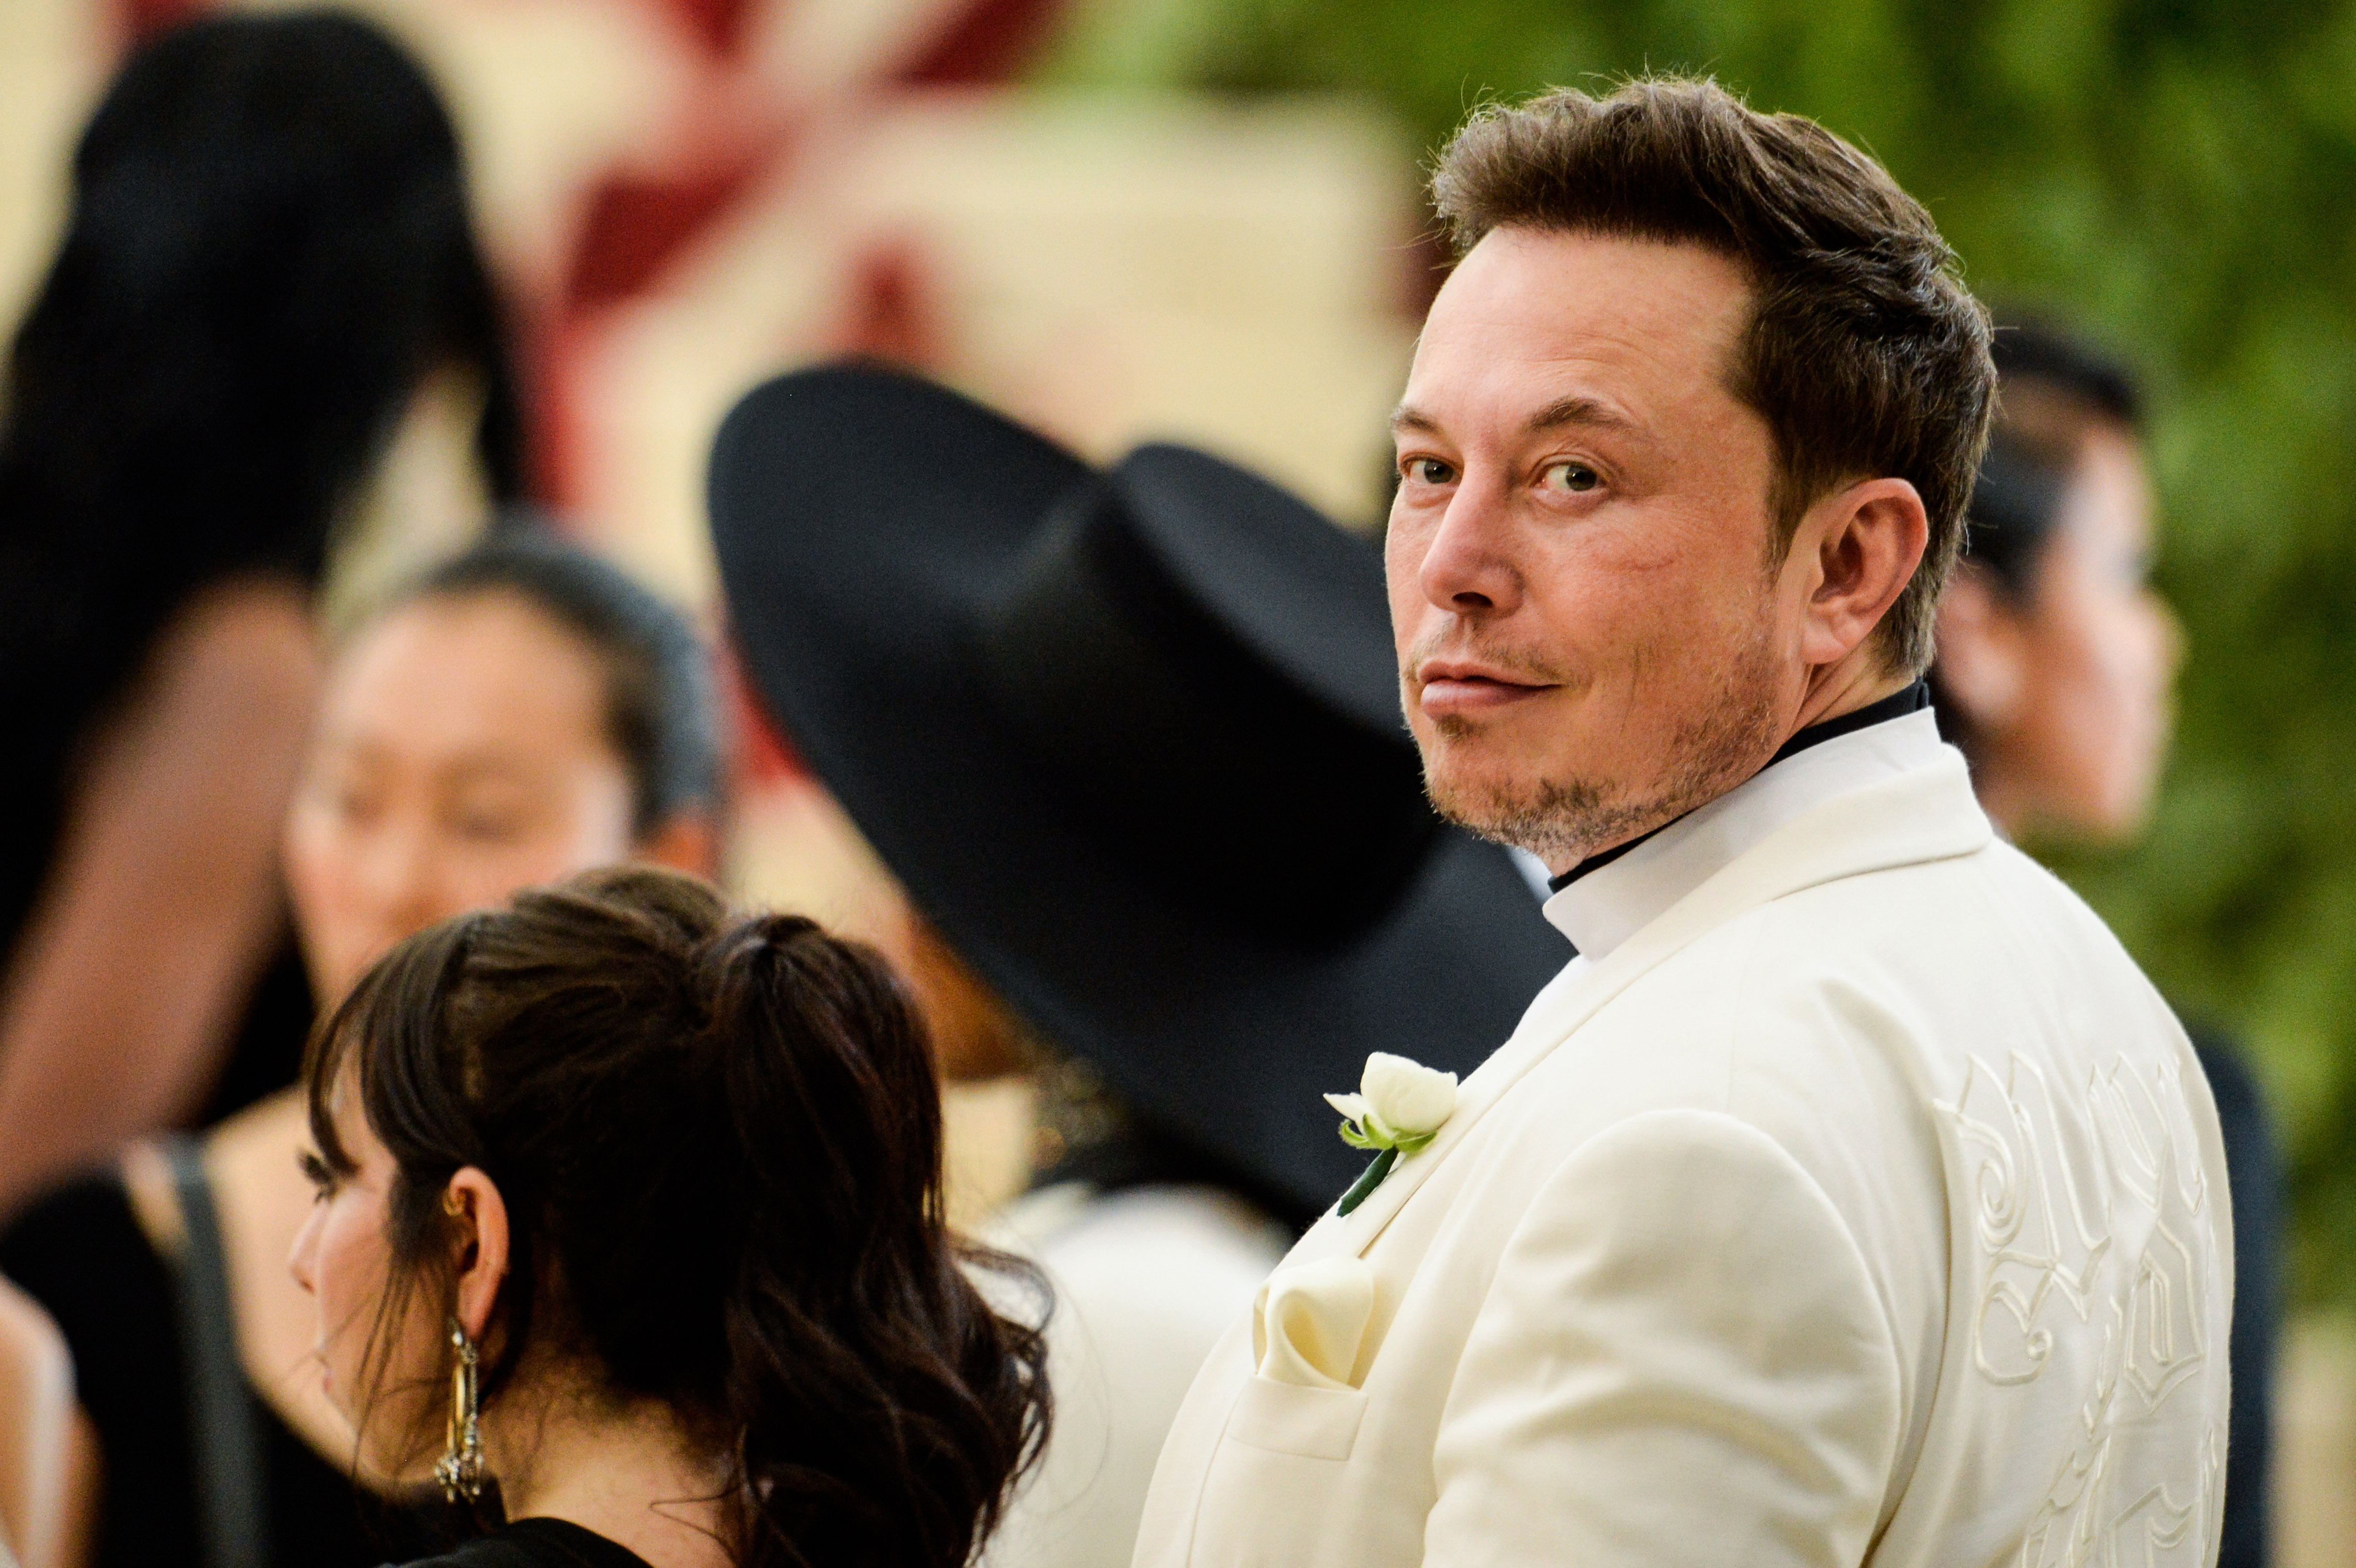 Elon Musk is under fire for his late night work schedule